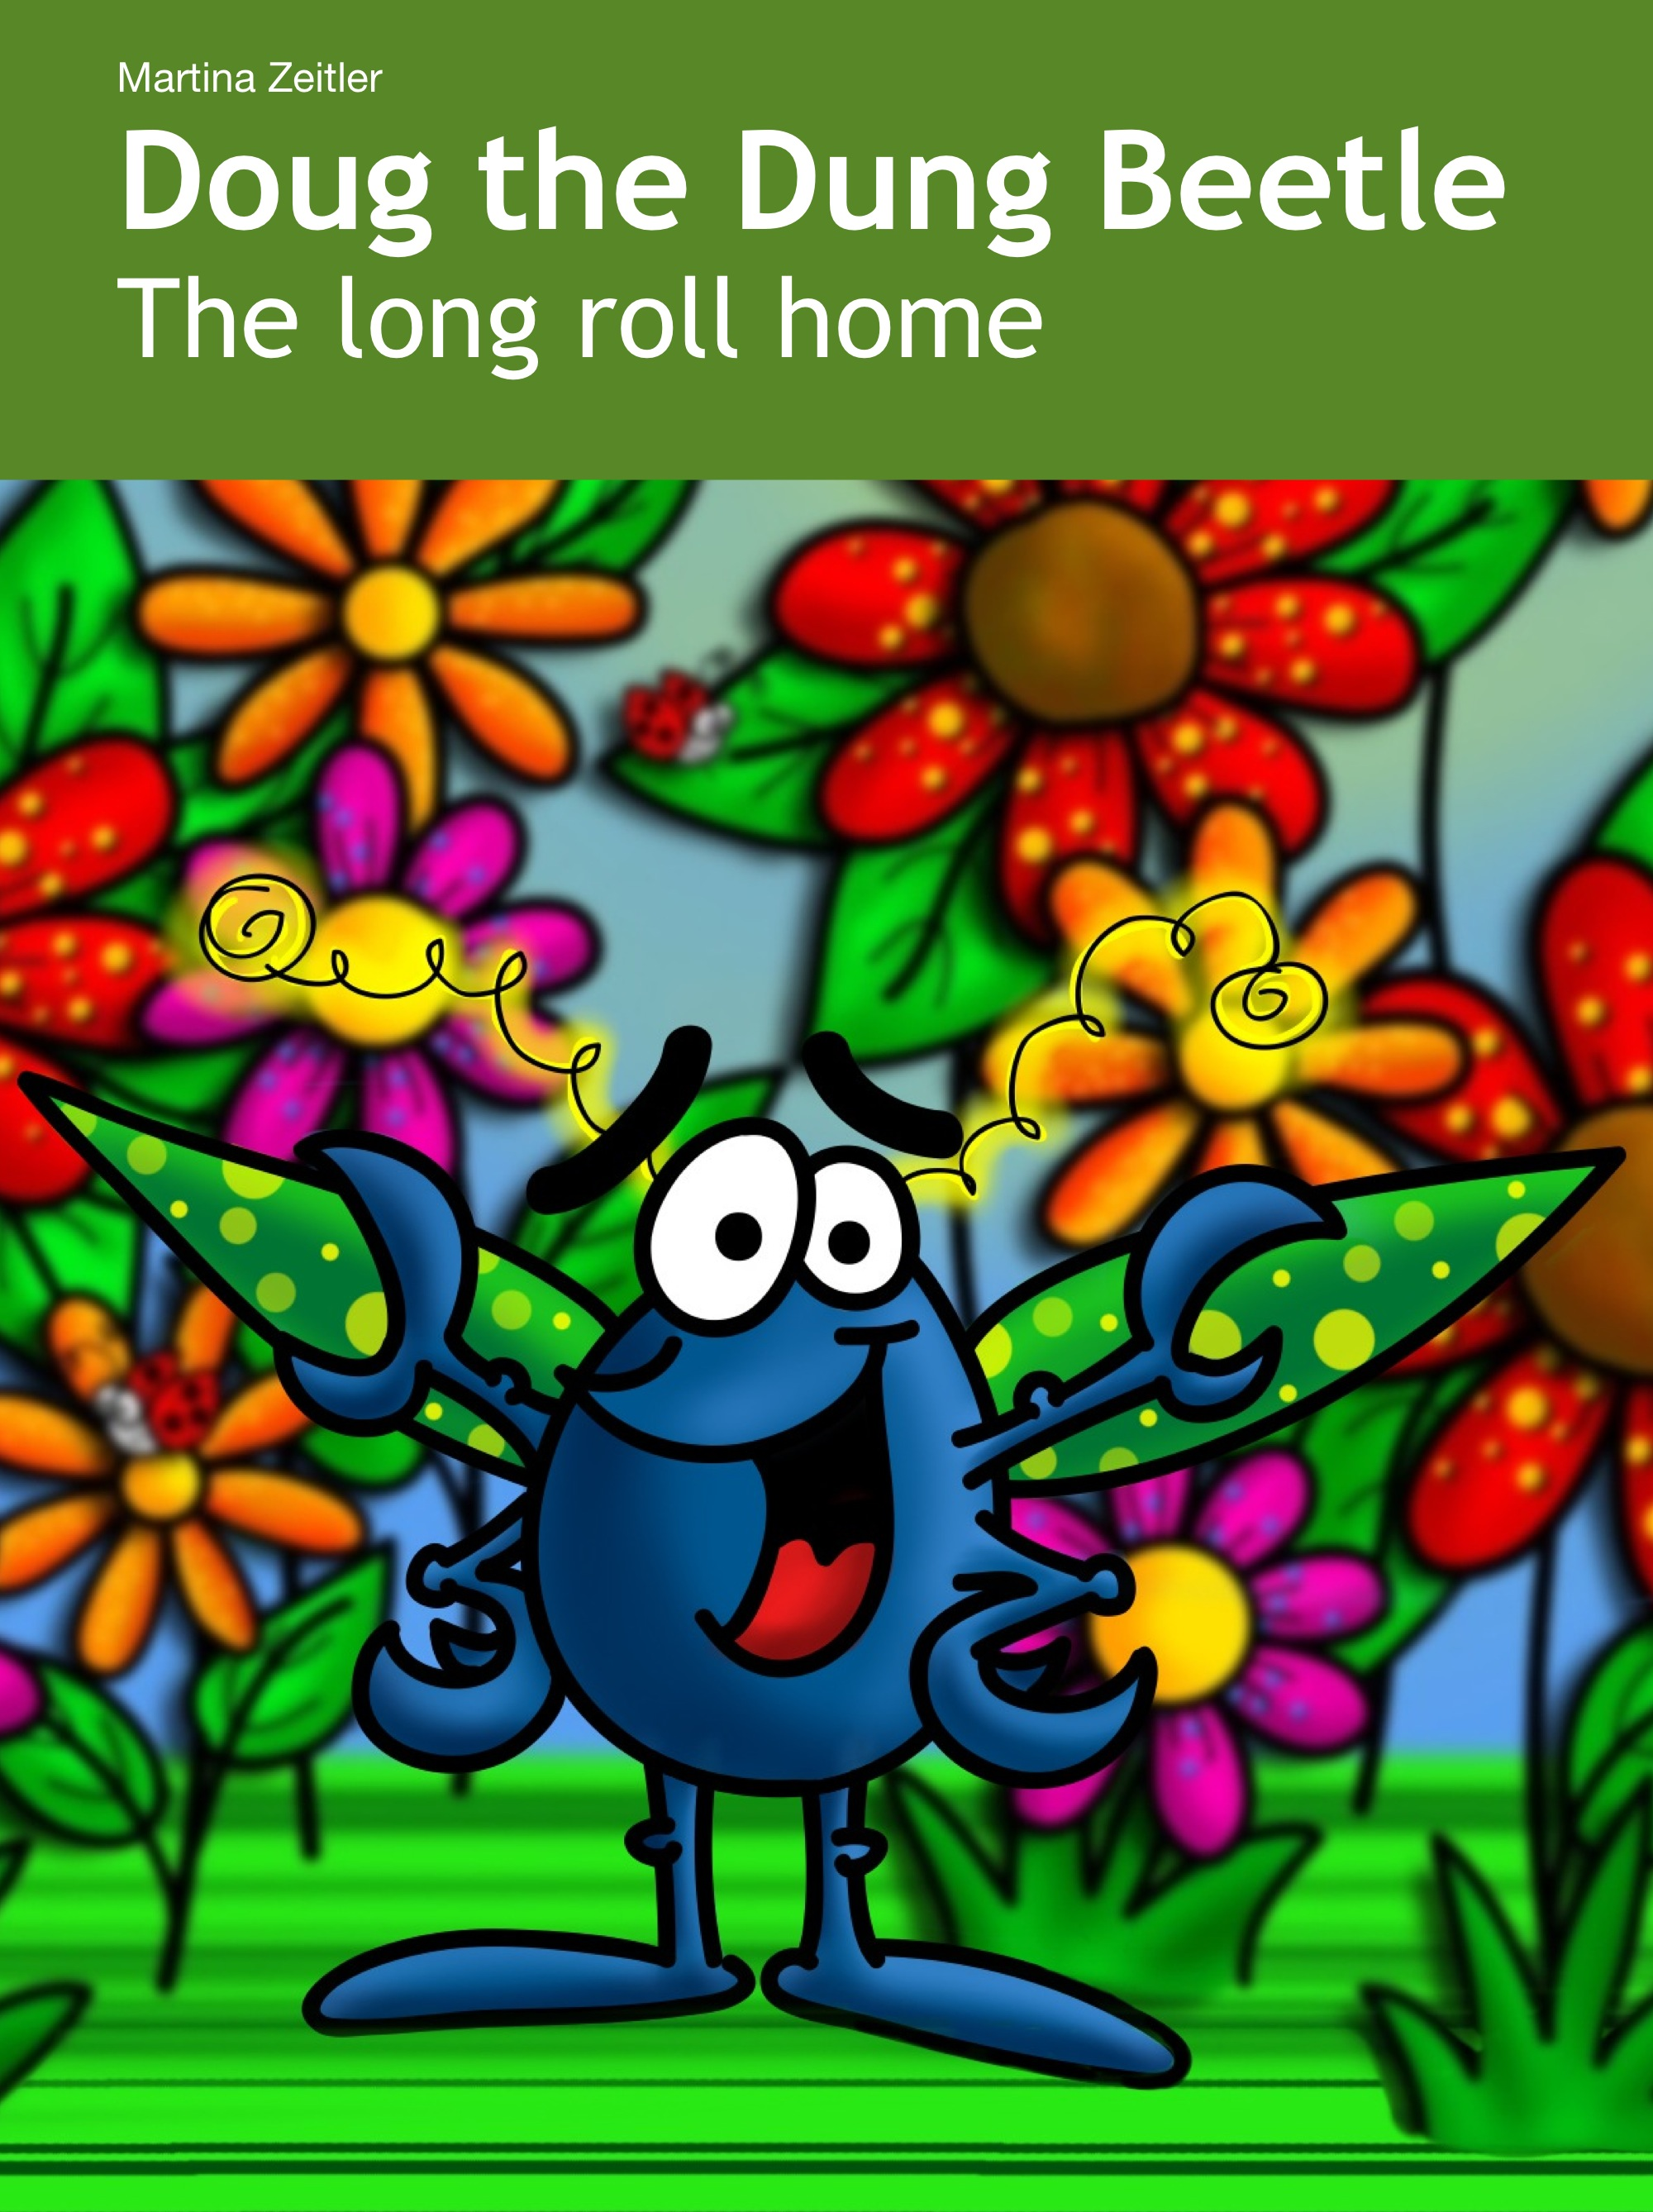 Doug the Dung Beetle: The long roll home